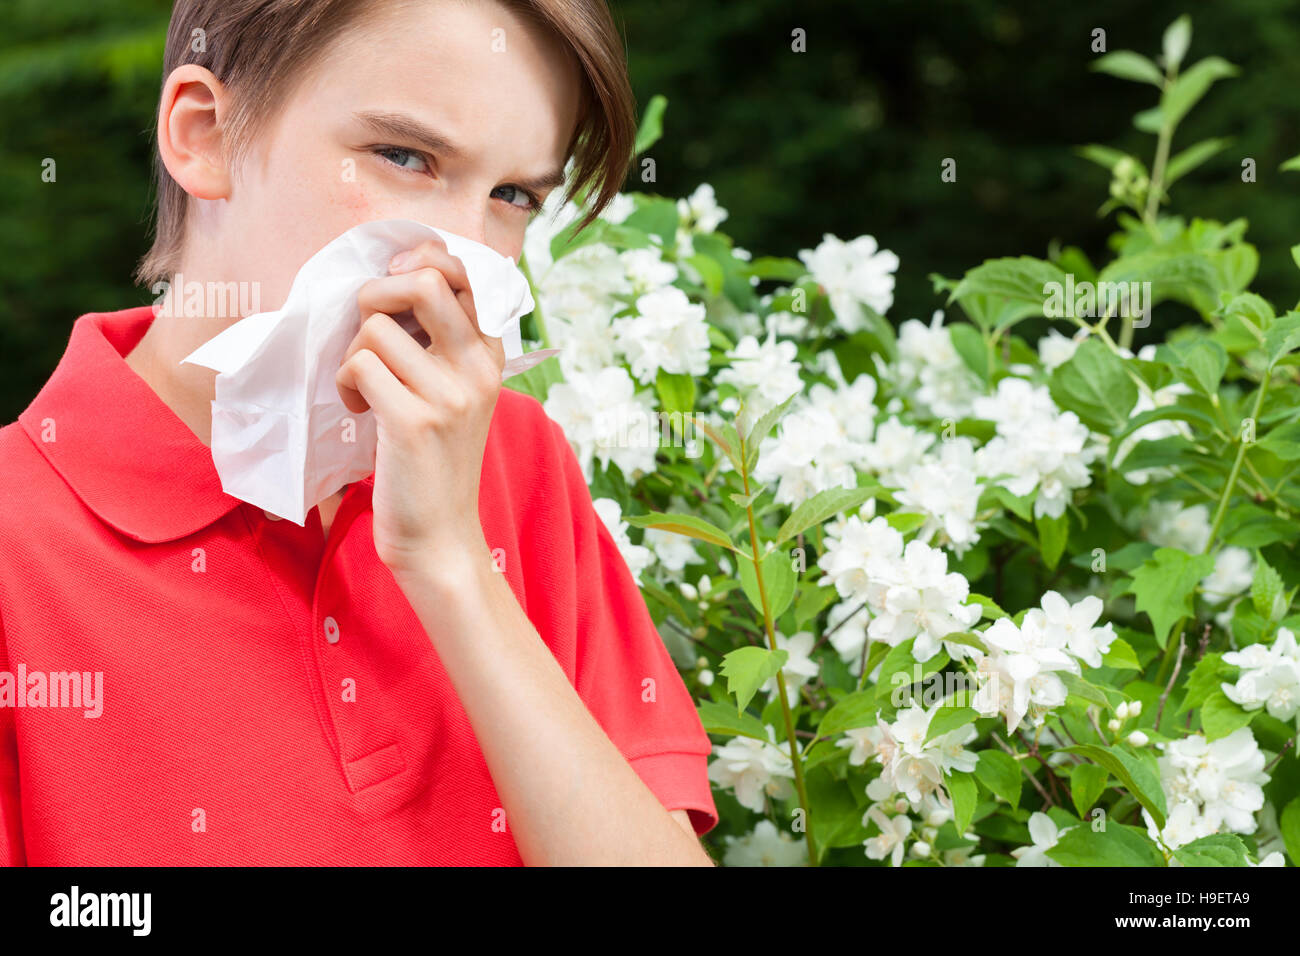 Teenage boy with hay fever blowing his nose allergic to bloom flowers in a spring garden - Stock Image